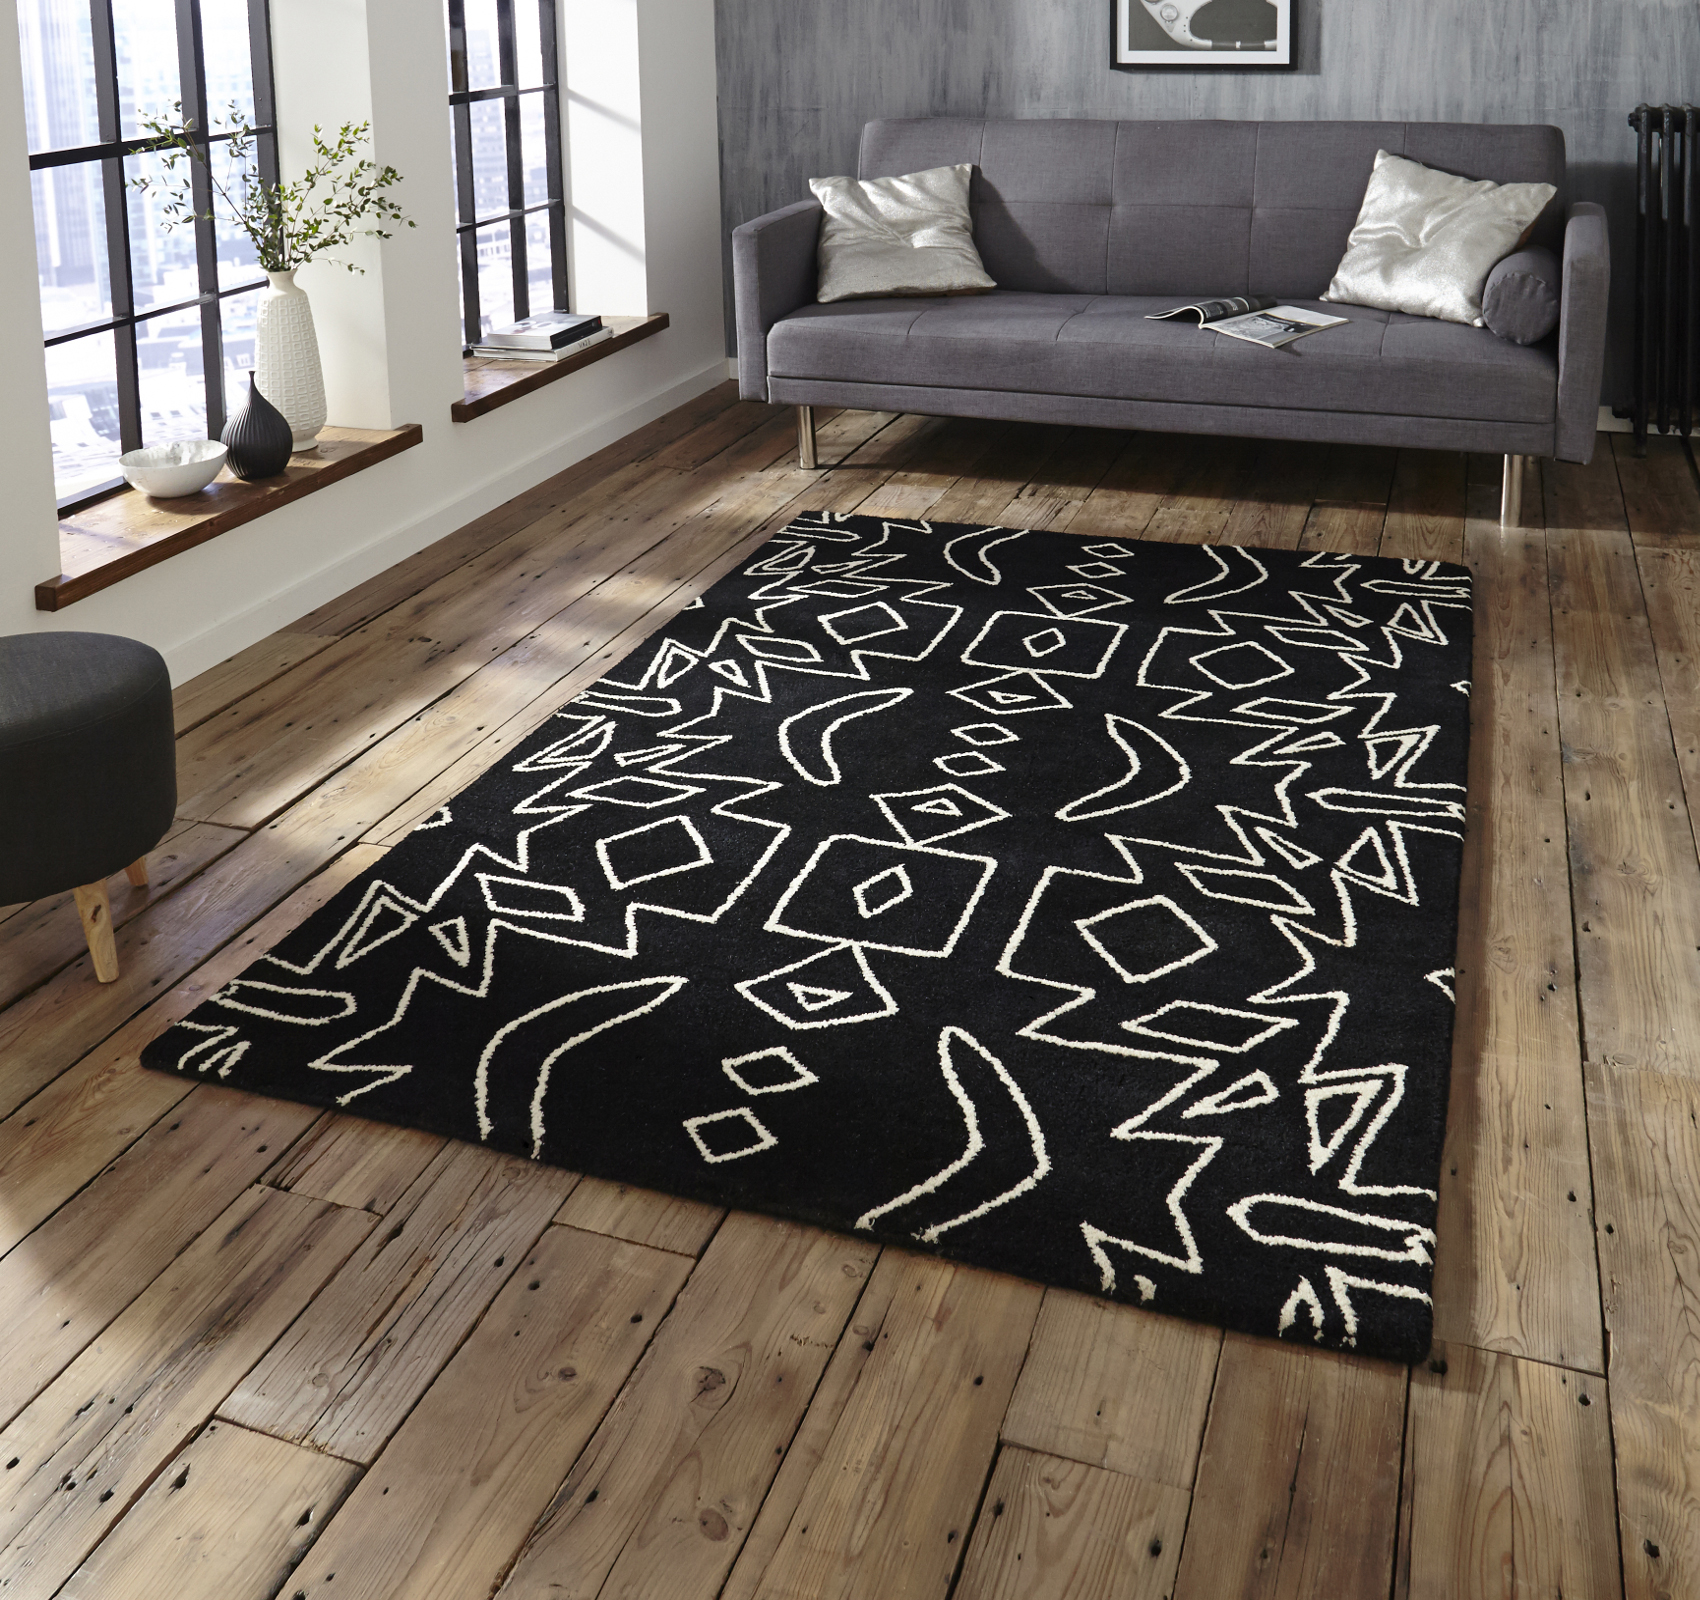 Black White Modern Tribal Rug 100 Wool Monochrome